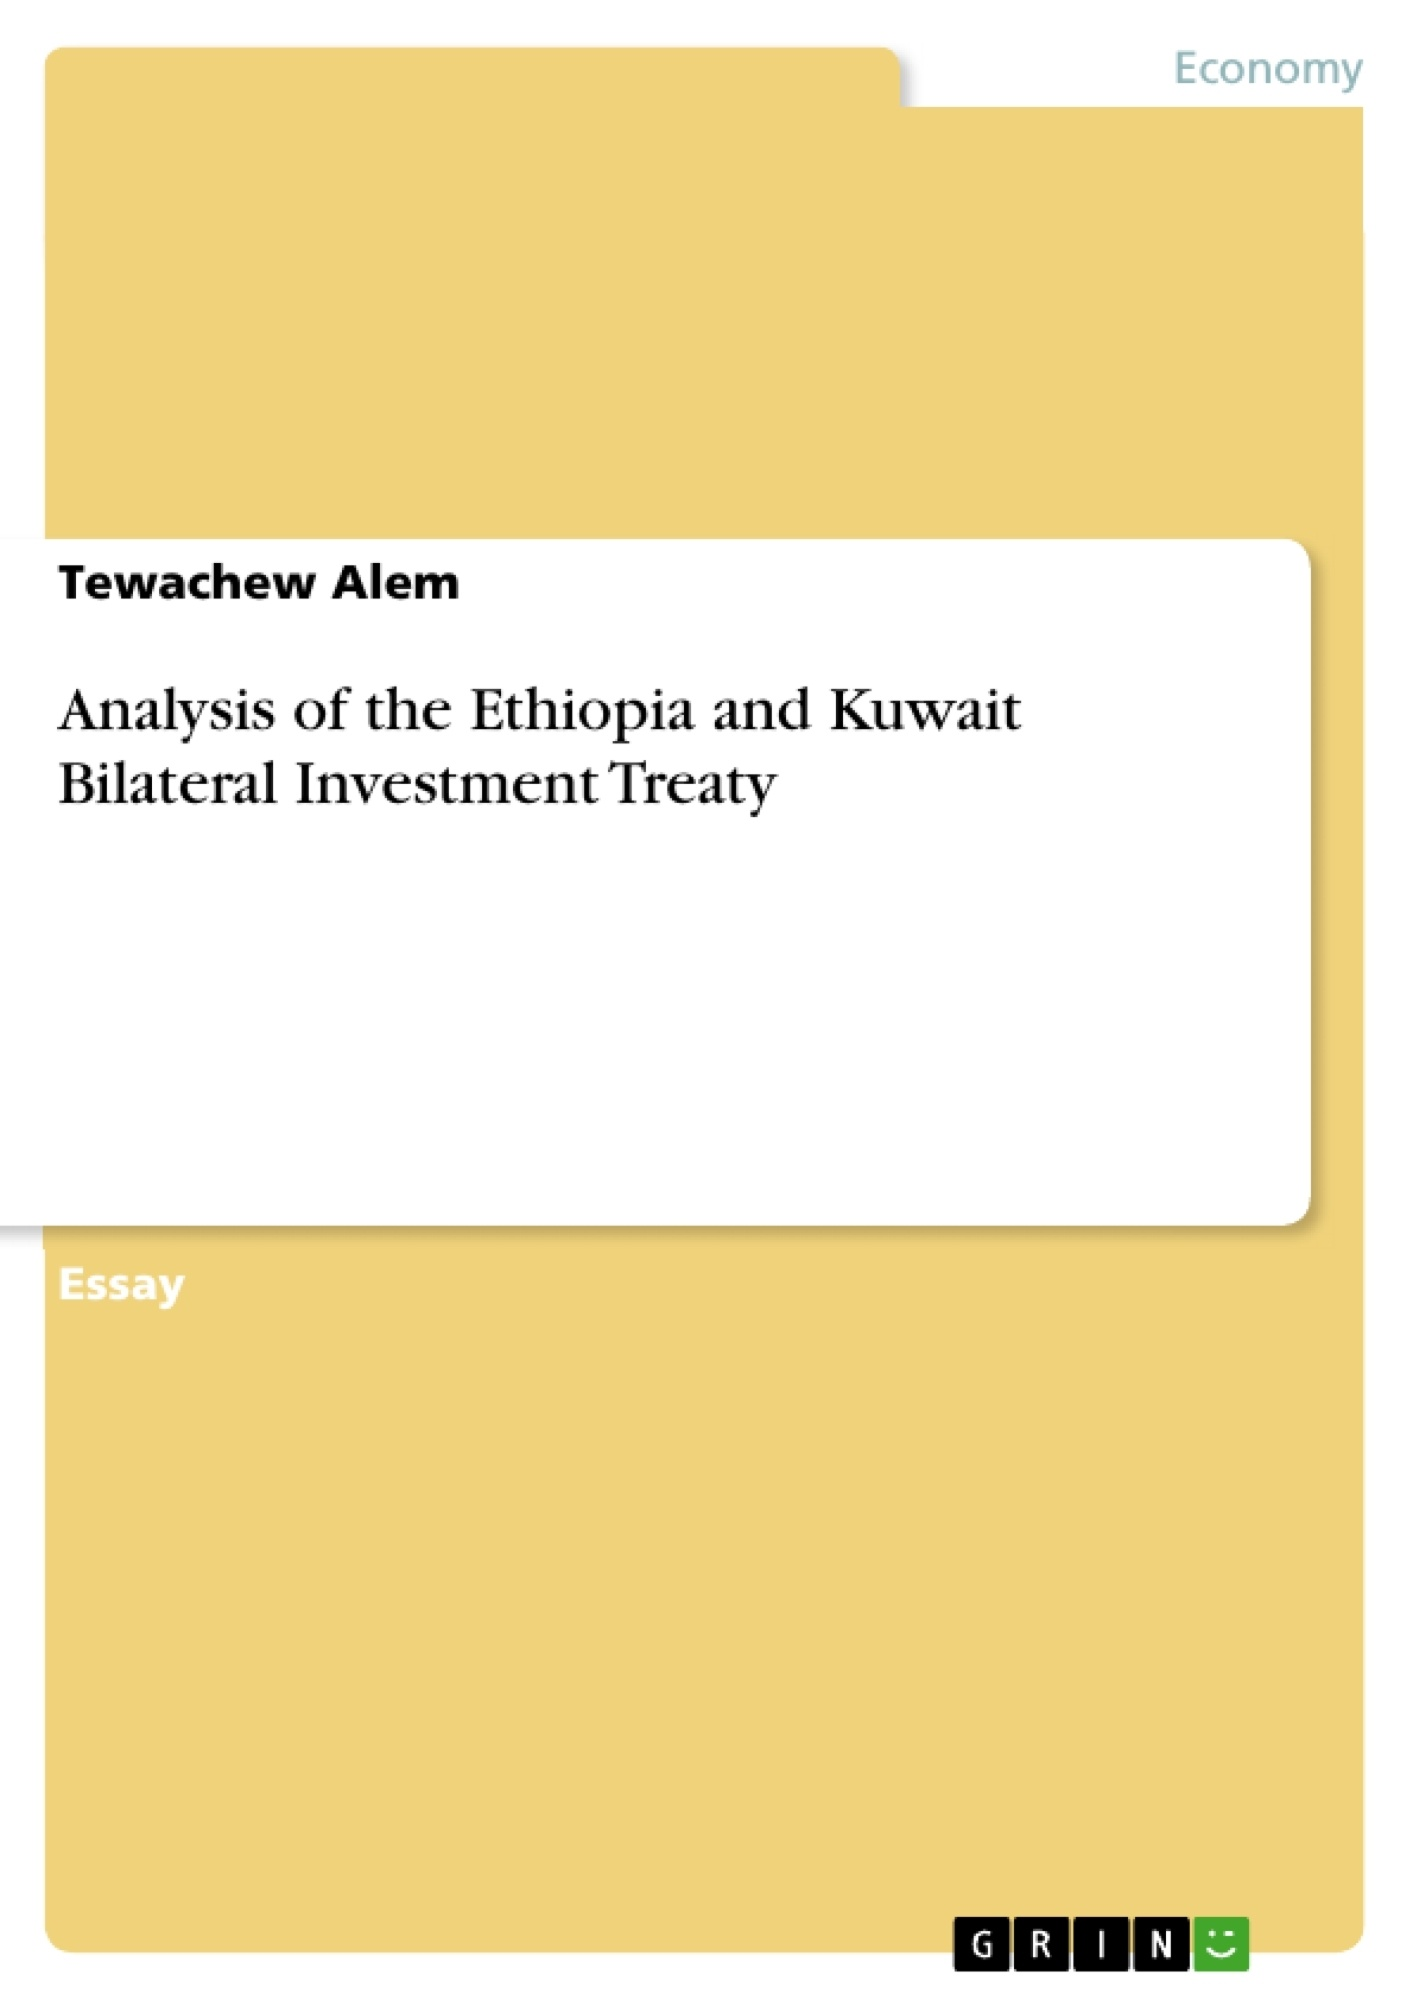 Title: Analysis of the Ethiopia and Kuwait Bilateral Investment Treaty